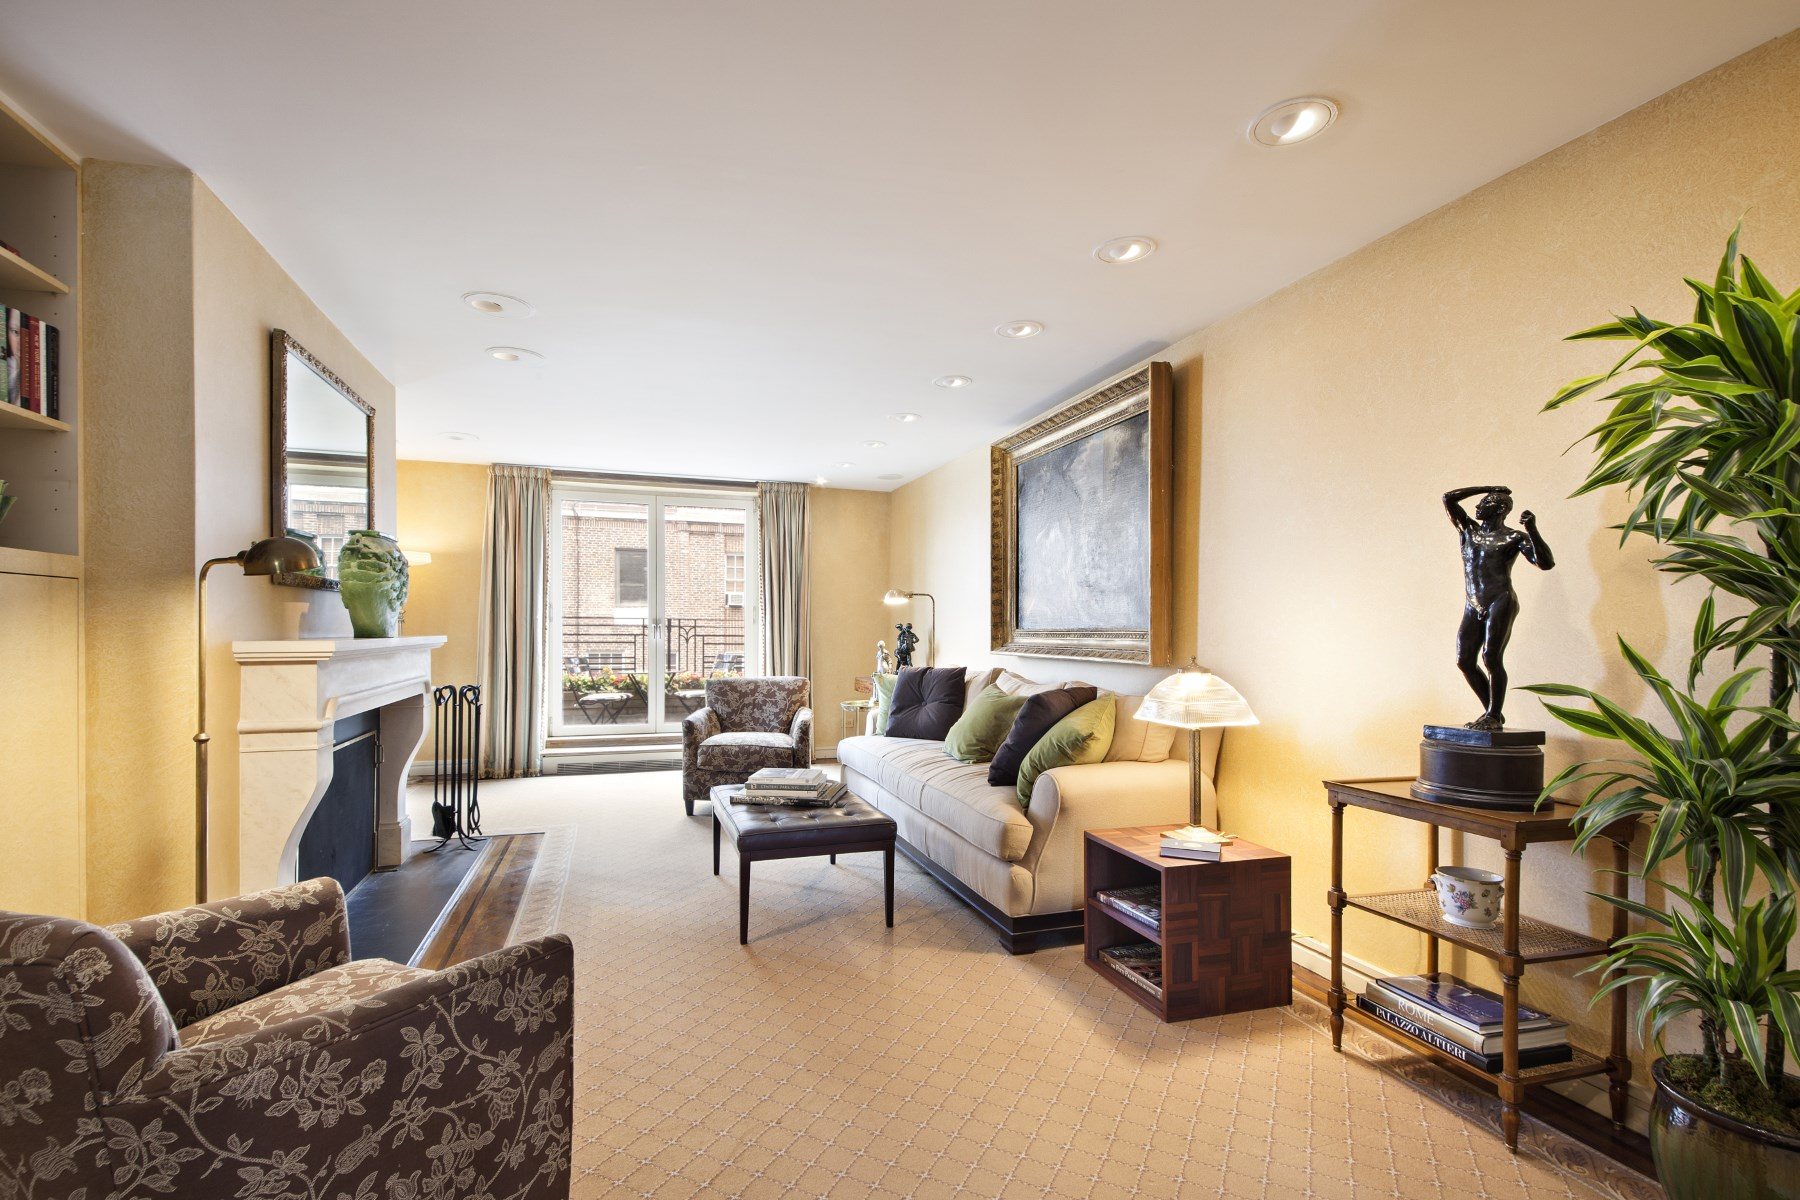 Co-op for Sale at 2 Beekman Place, Apt. 17A 2 Beekman Place Apt 17a New York, New York 10022 United States